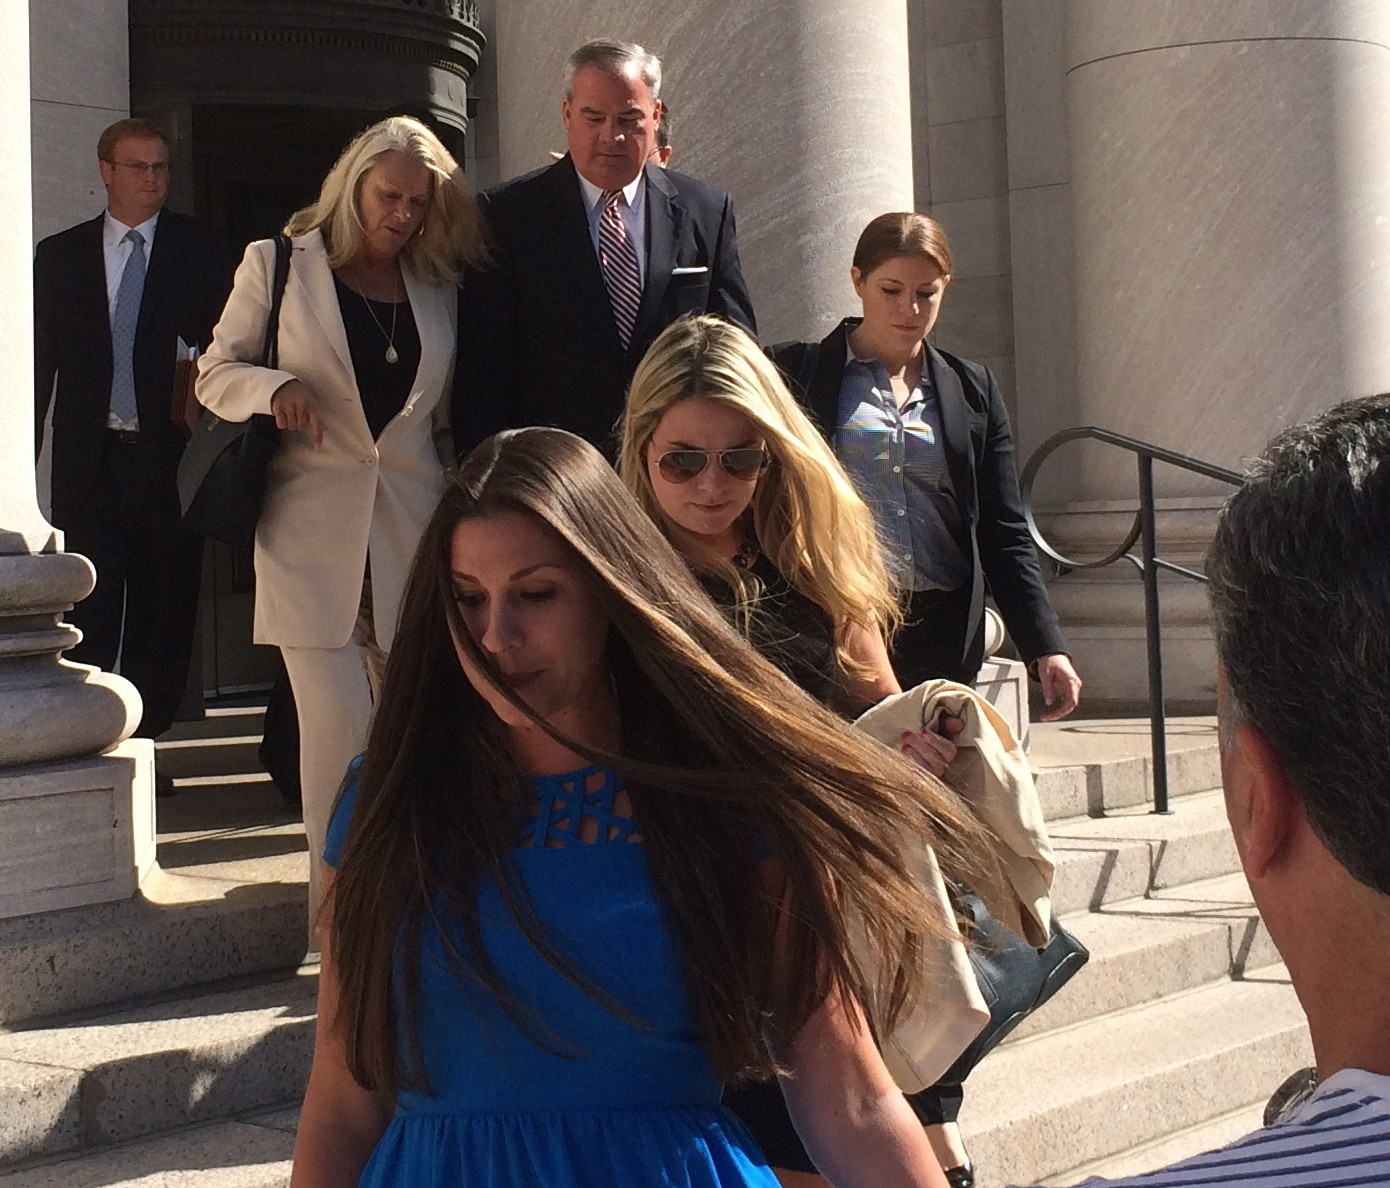 Greenberg testifies Rowland wanted $720K to advise campaign